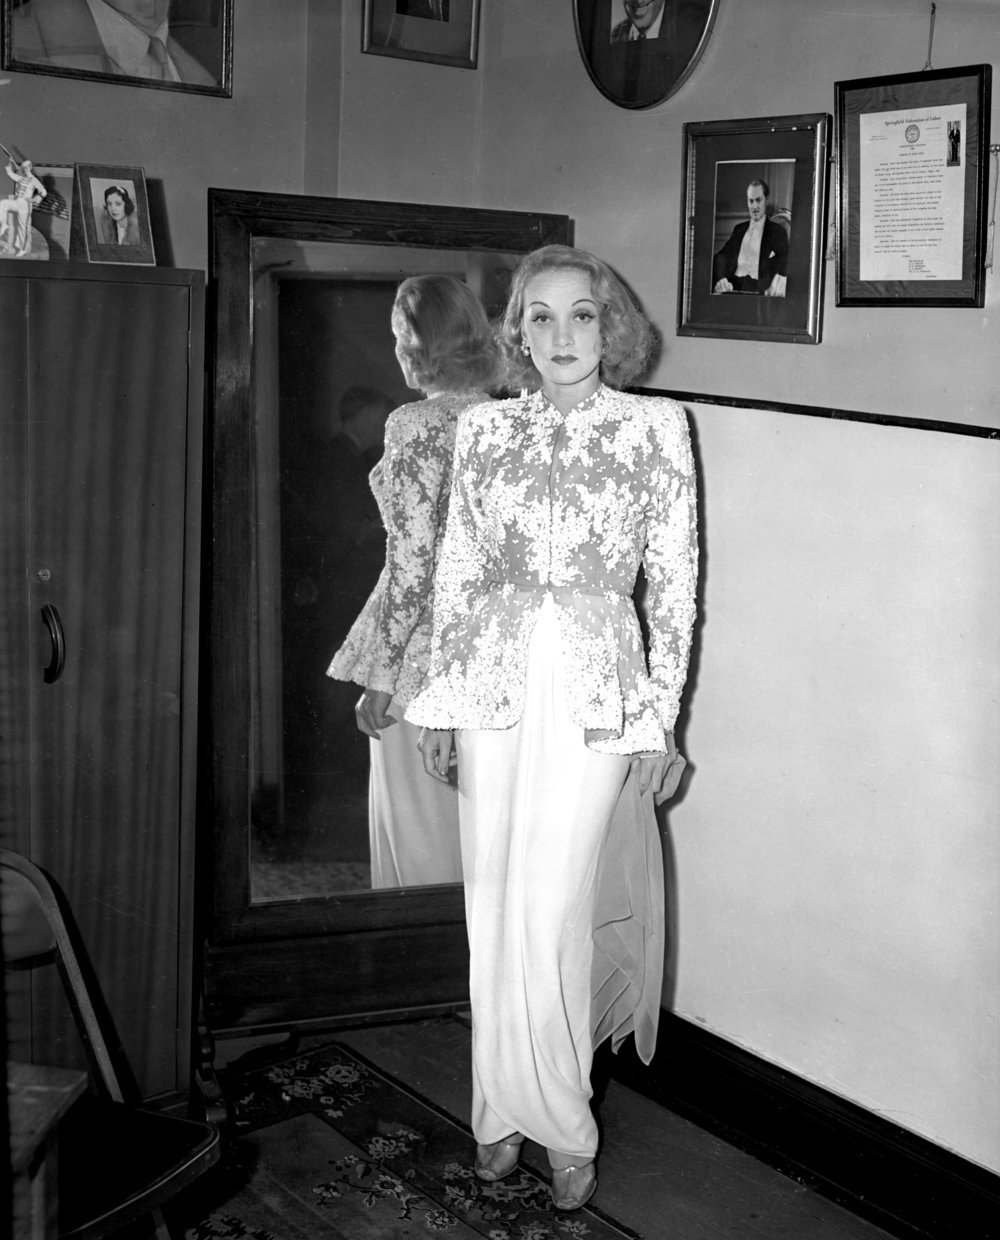 Marlene Dietrich, June 16, 1942 in Orpheum Theater dressing room.